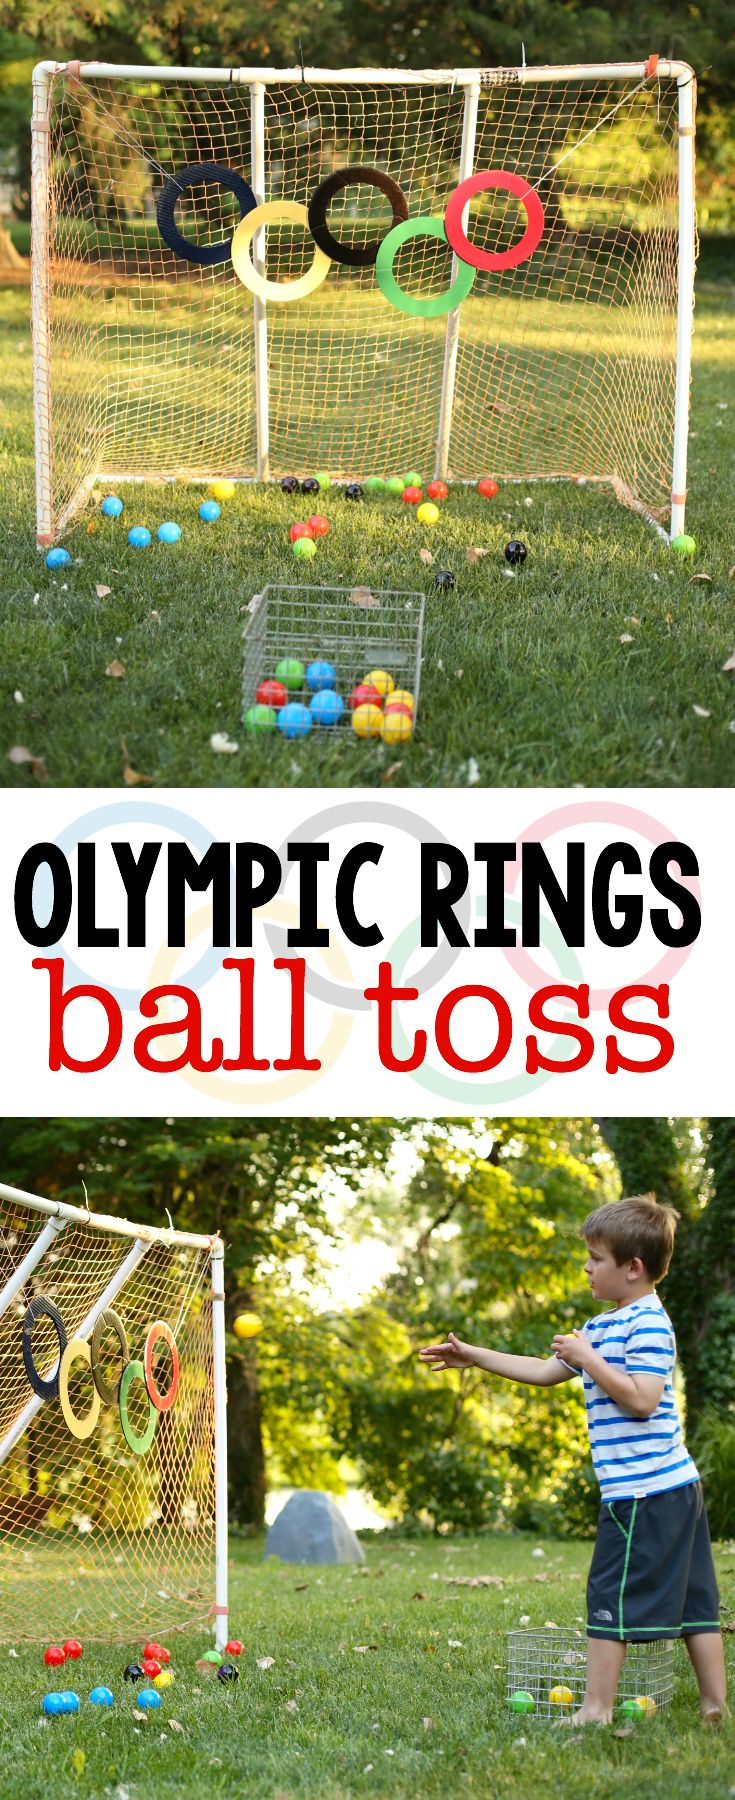 Get Olympic-ready by practicing your  gross motor skills by playing Olympic rings ball toss.